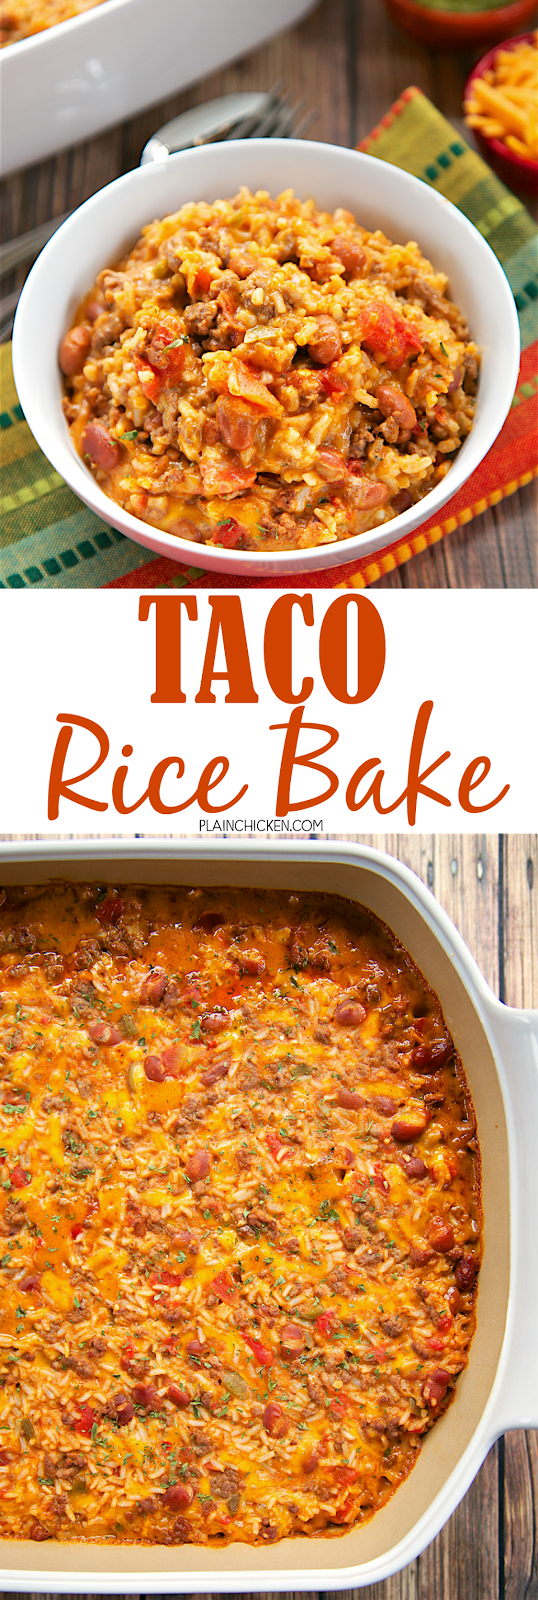 Taco Rice Bake Full Meal Recipes Meat Dinners Rotel Recipes